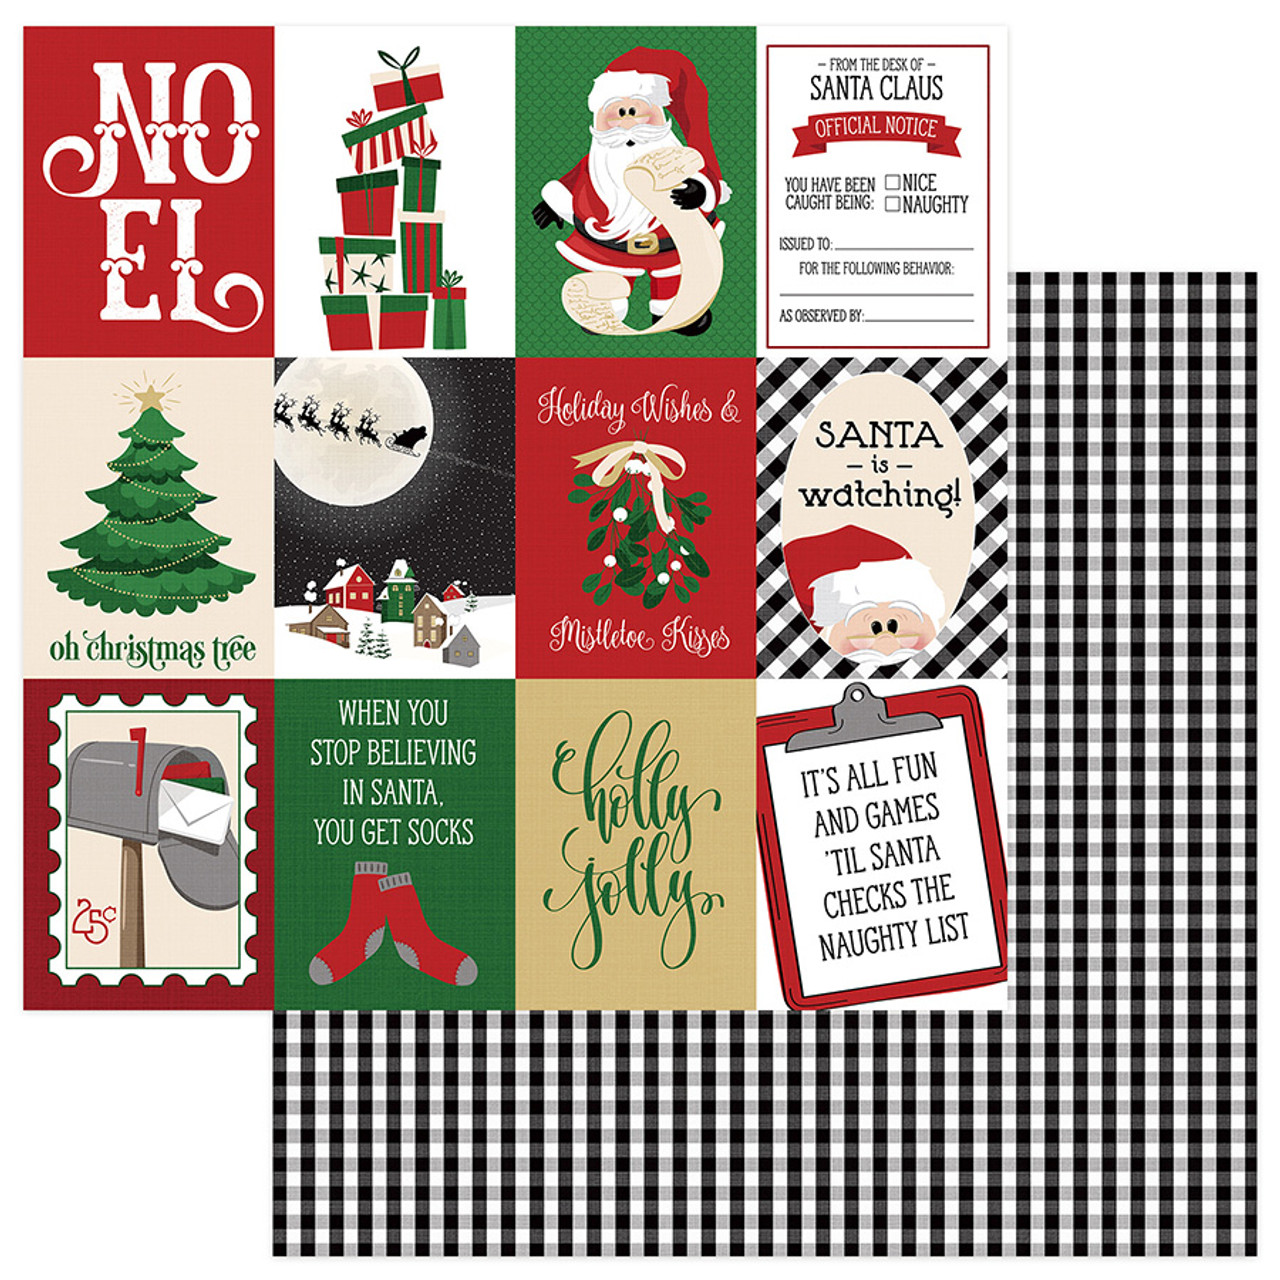 Here Comes Santa Collection Holly Jolly 12 x 12 Double-Sided Scrapbook Paper by Photoplay Paper